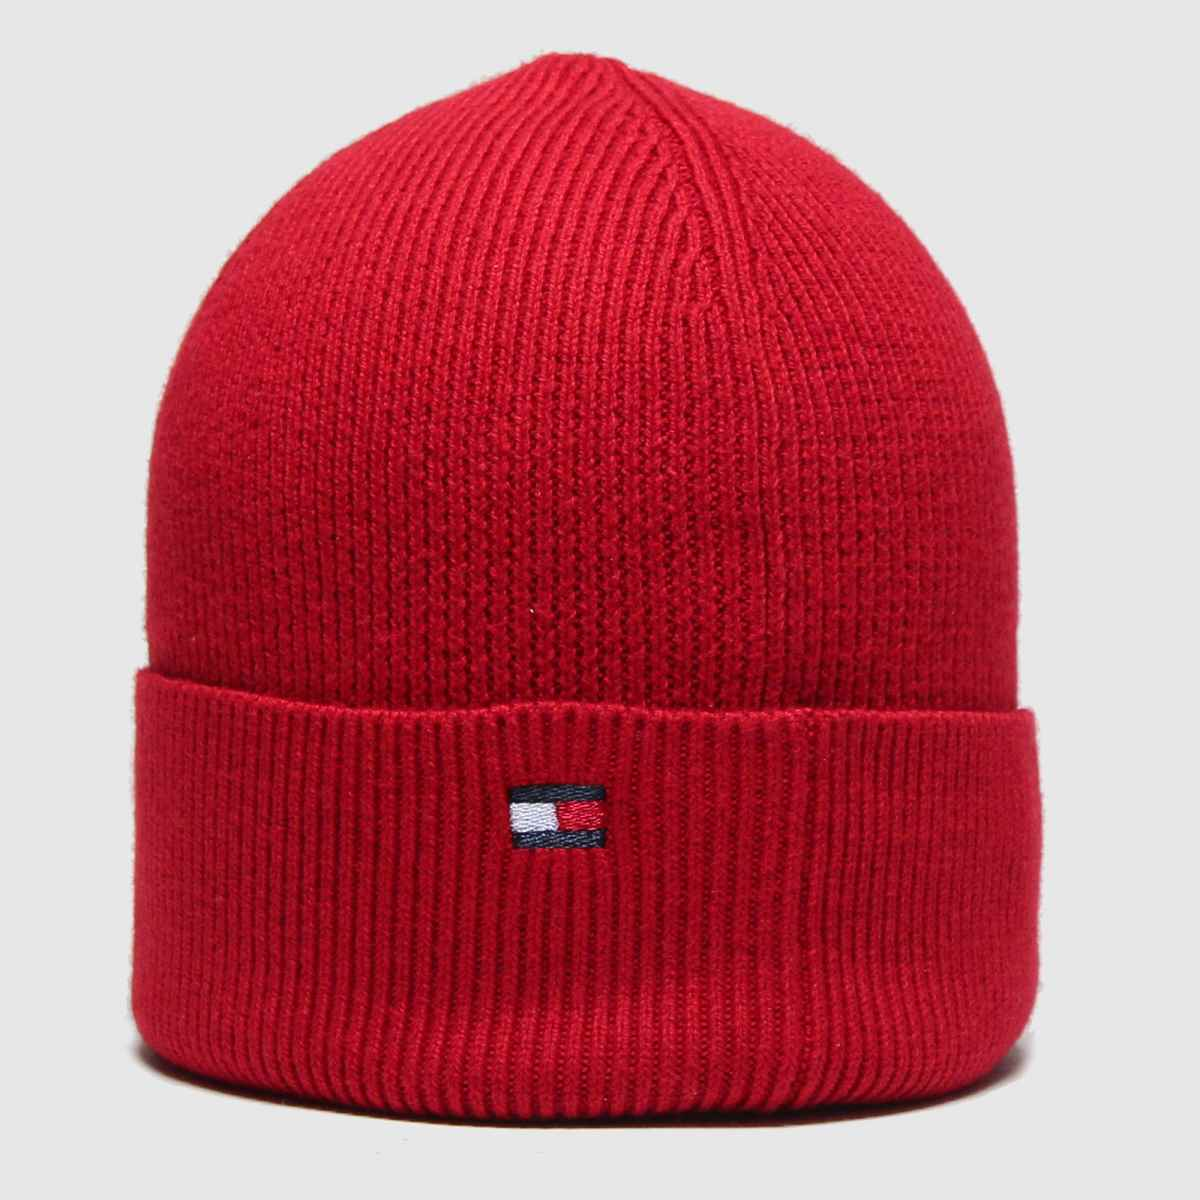 Accessories Tommy Hilfiger Red Esential Knit Beanie